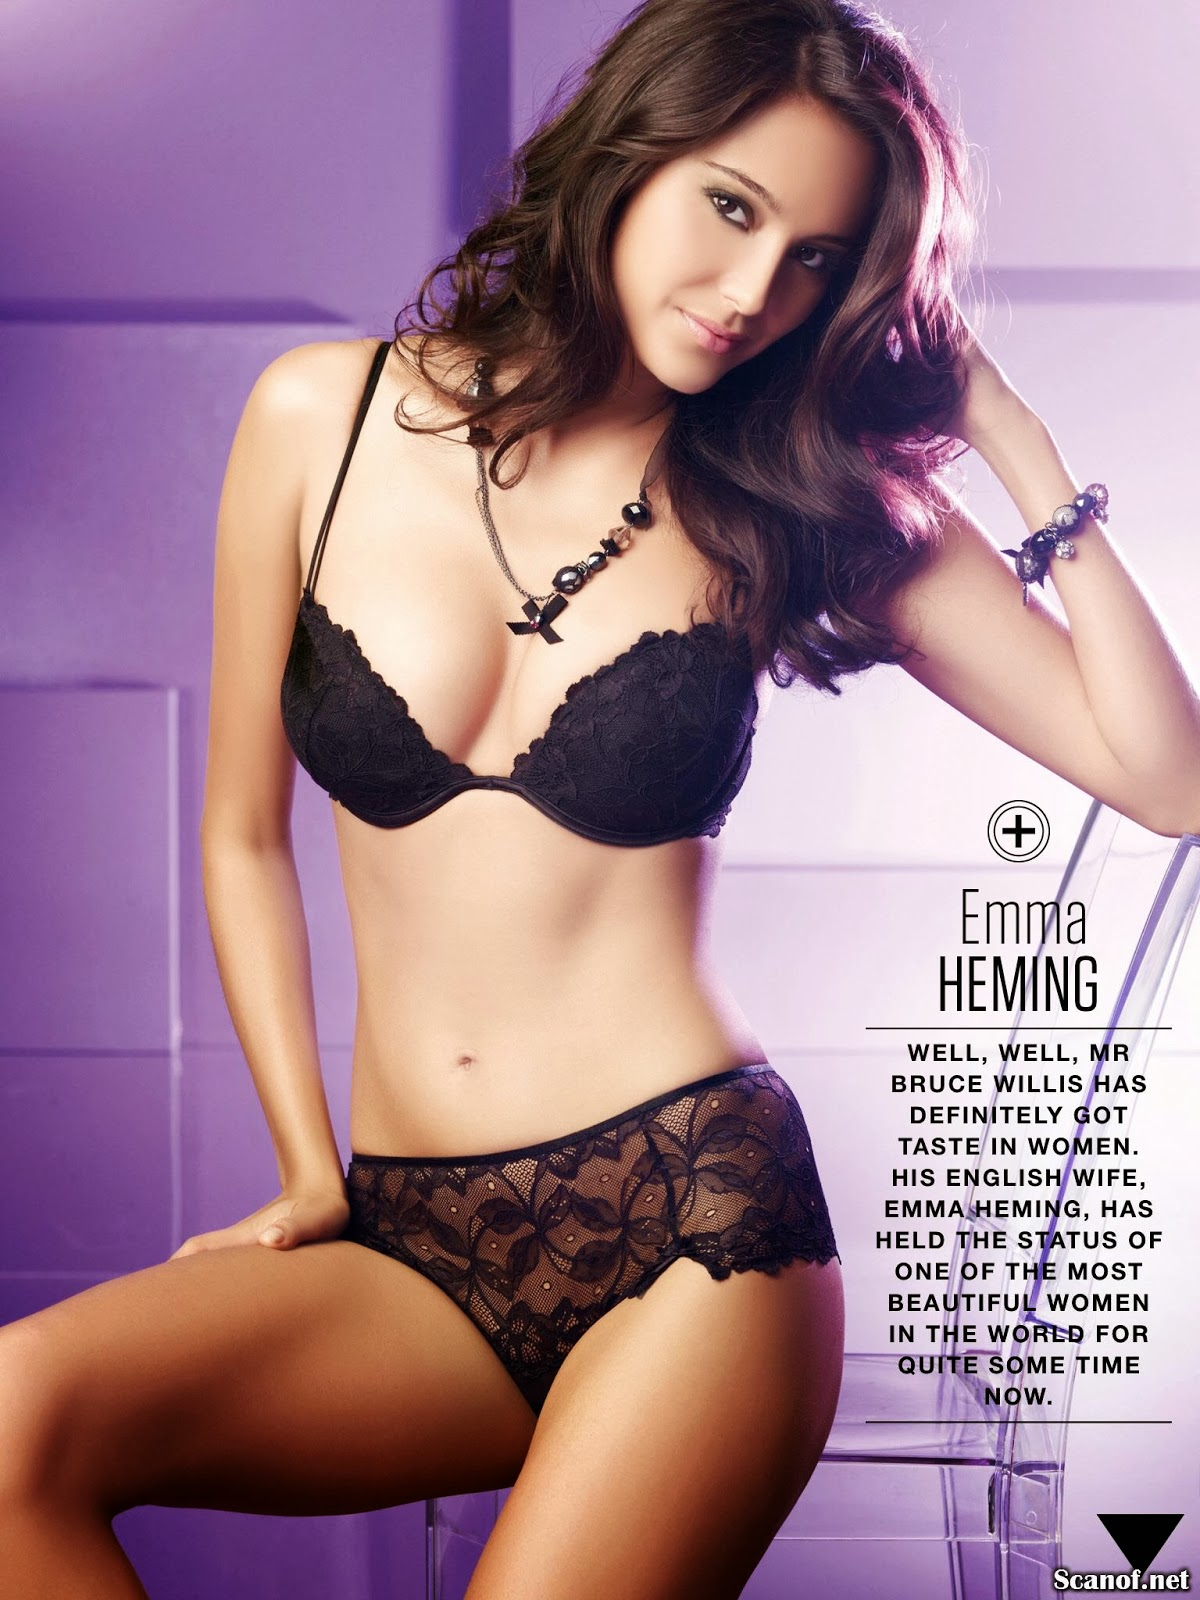 Hottest Girls 2014 The Man US Magazine Photoshoot March 2014 HQ Pictures